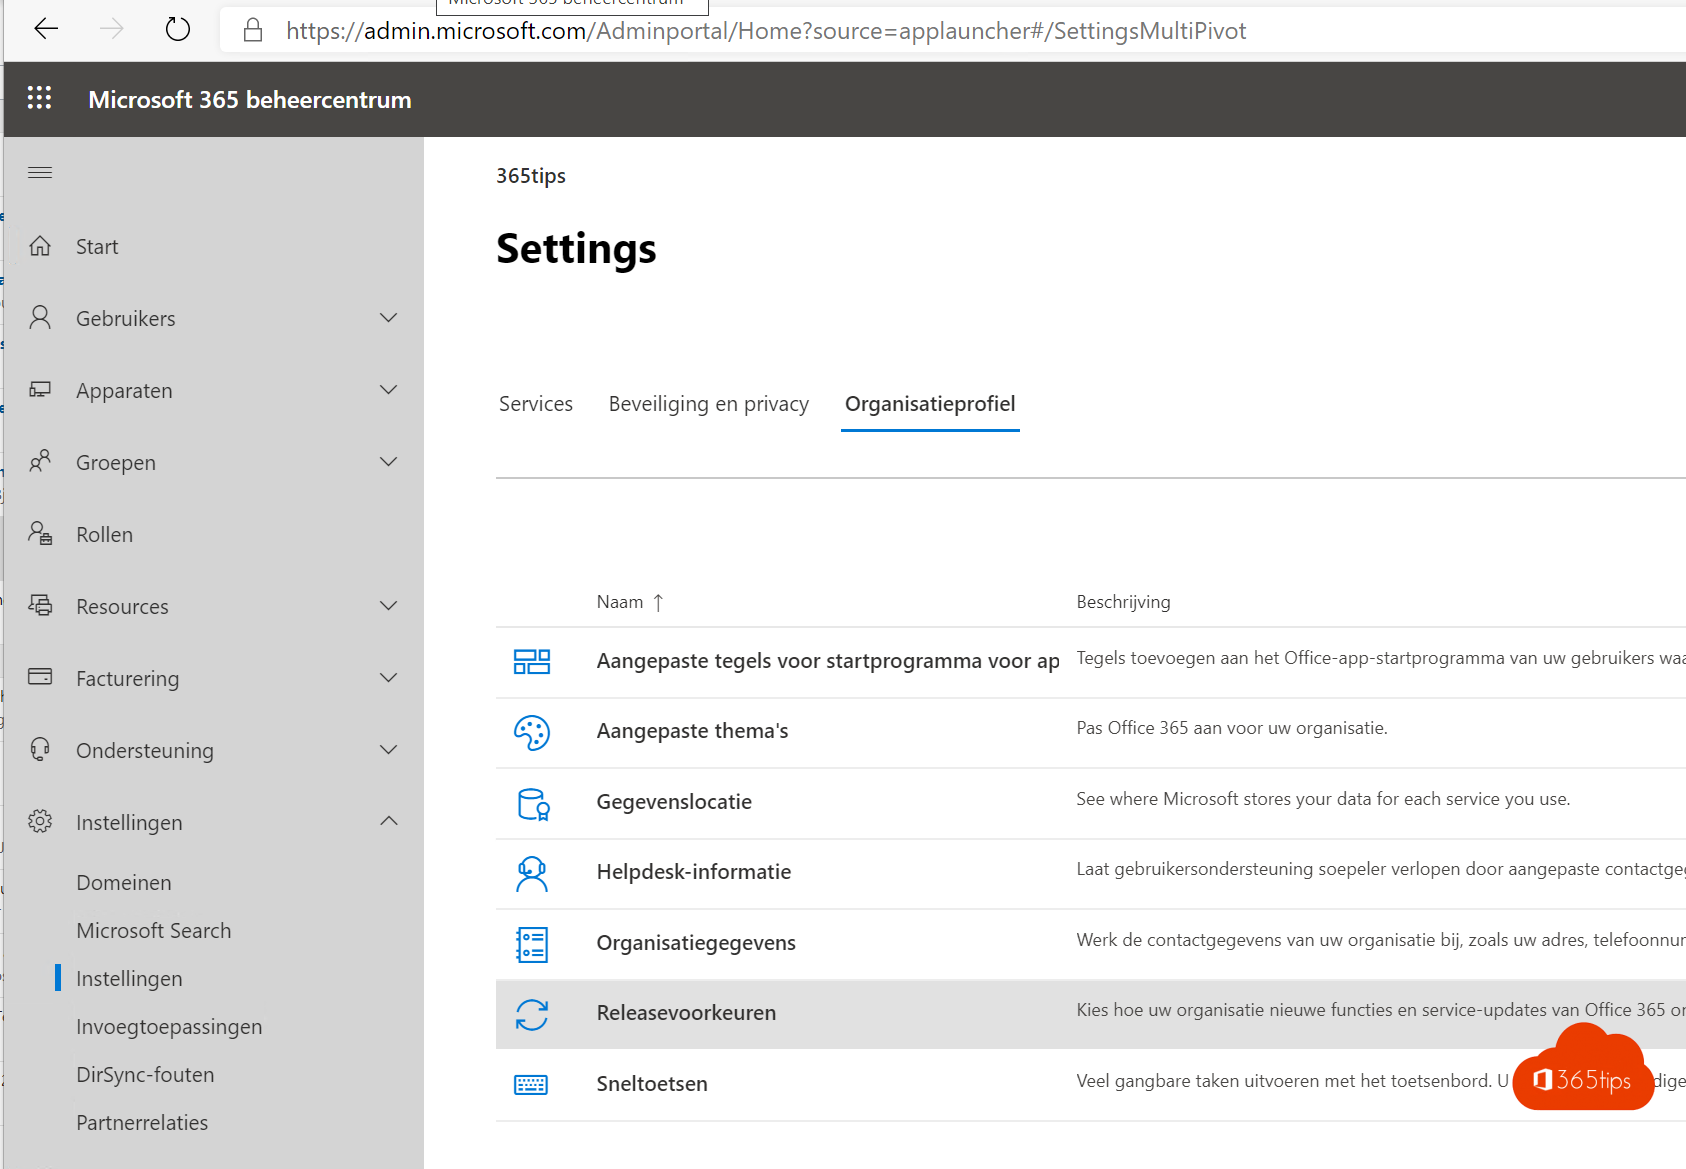 Configureer je Office 365 tenant naar 'First Release' in 3 stappen